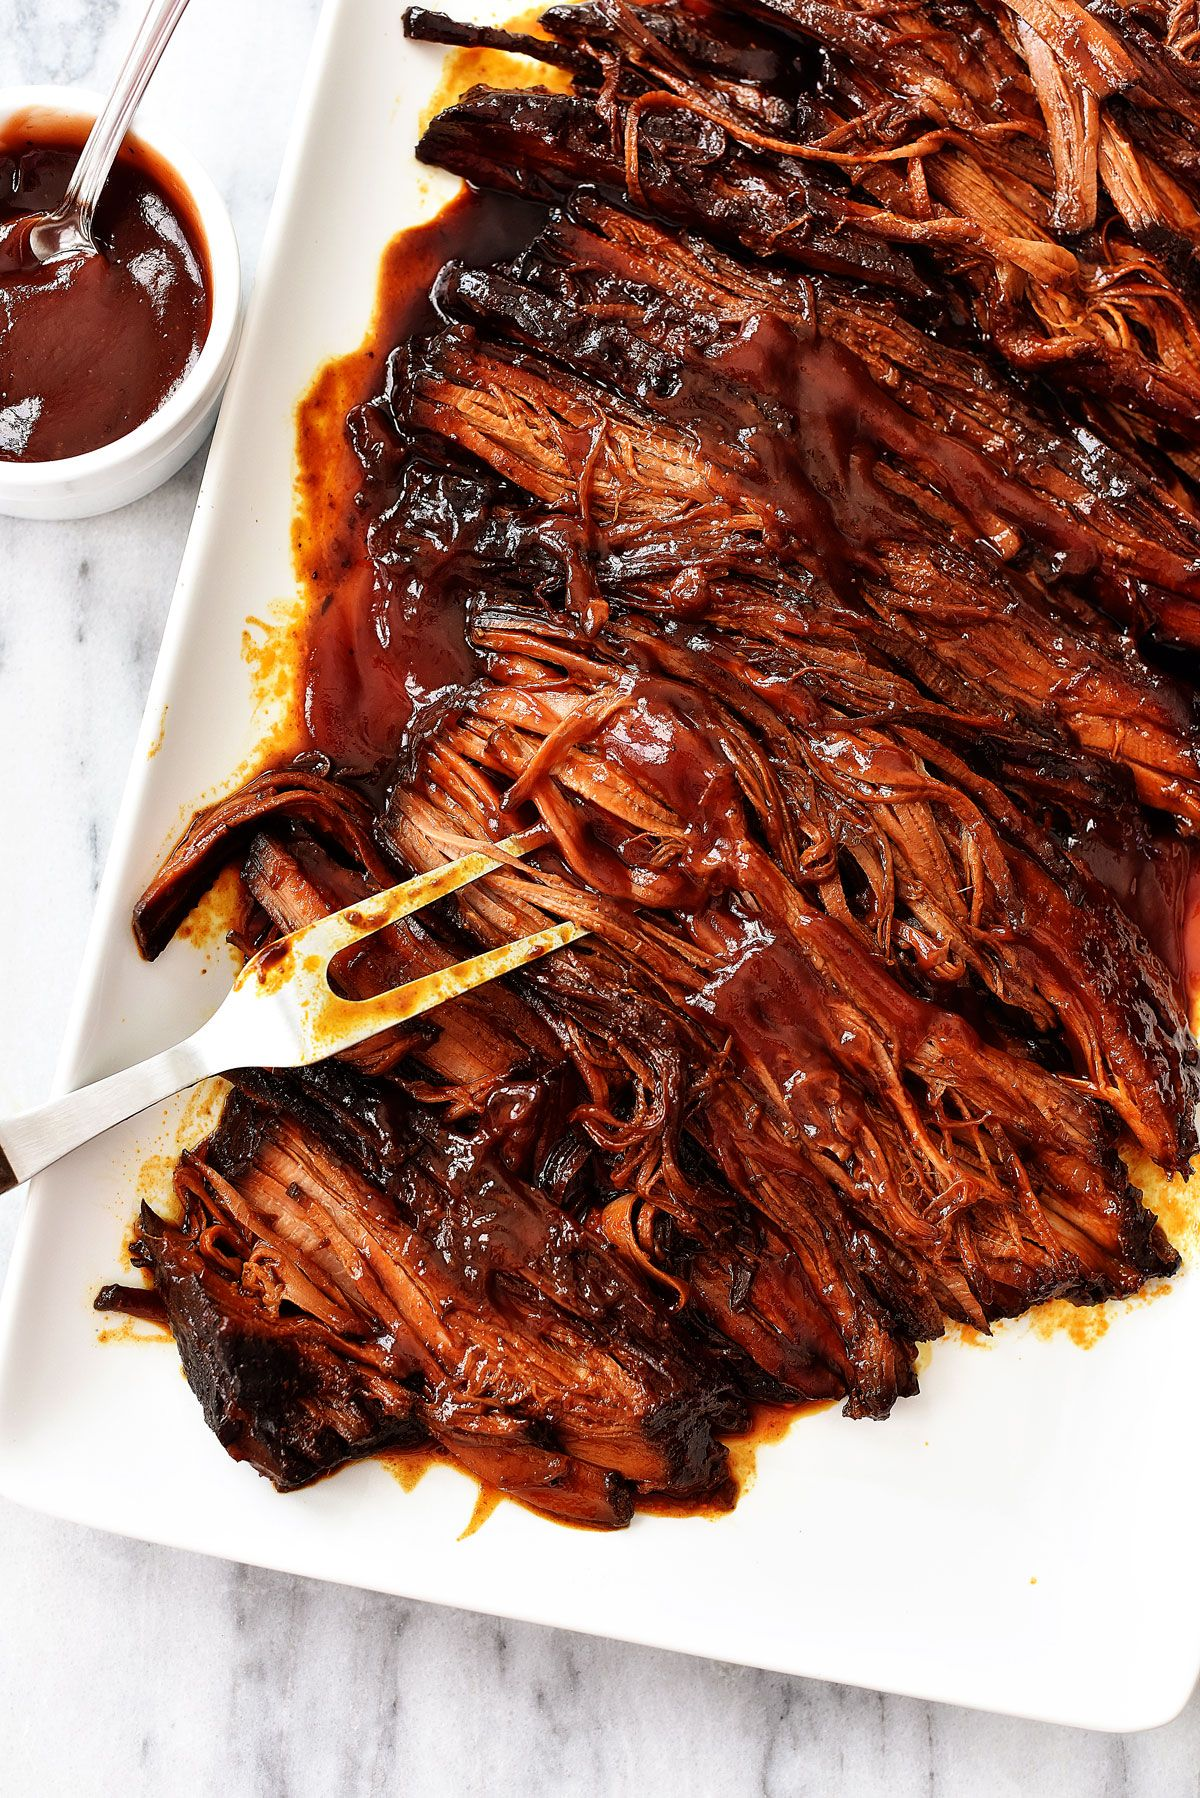 Ing It For The 12 Hours Or Longer Makes It Extra Tender Cooking Brisket In A Shorter Time Wi Slow Cooker Bbq Beef Bbq Brisket Recipes Brisket Recipes Crockpot